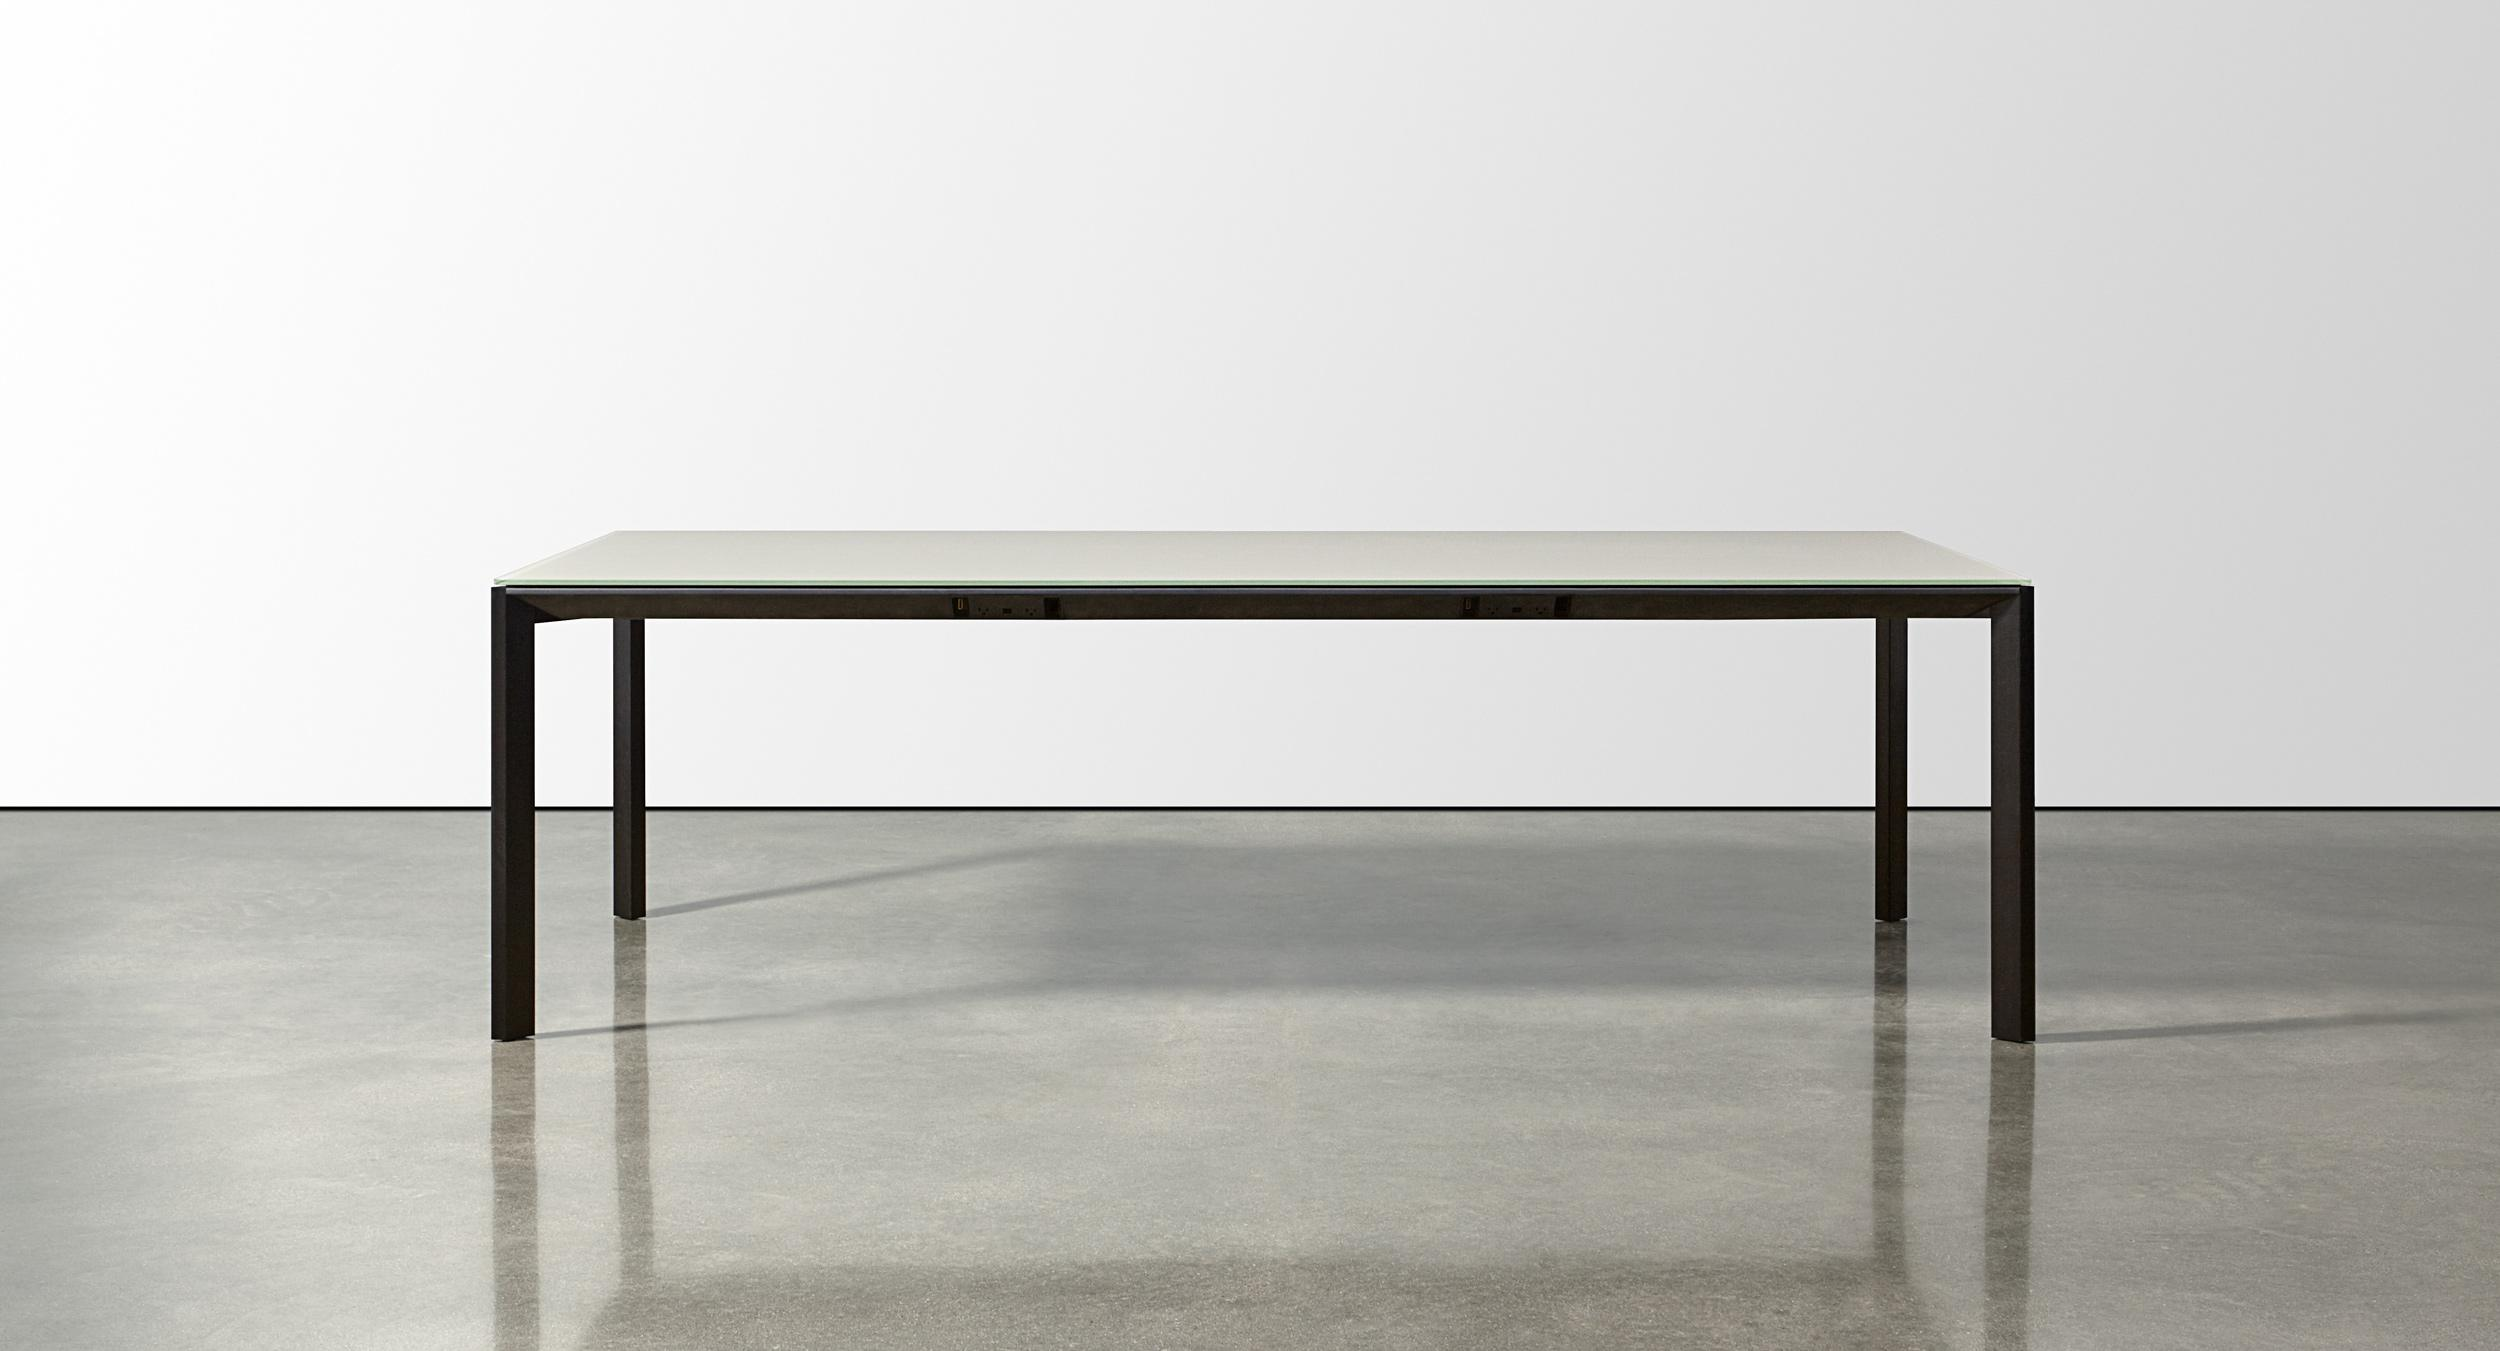 Halo tables are available in a variety of superbly designed shapes to suit any project need.